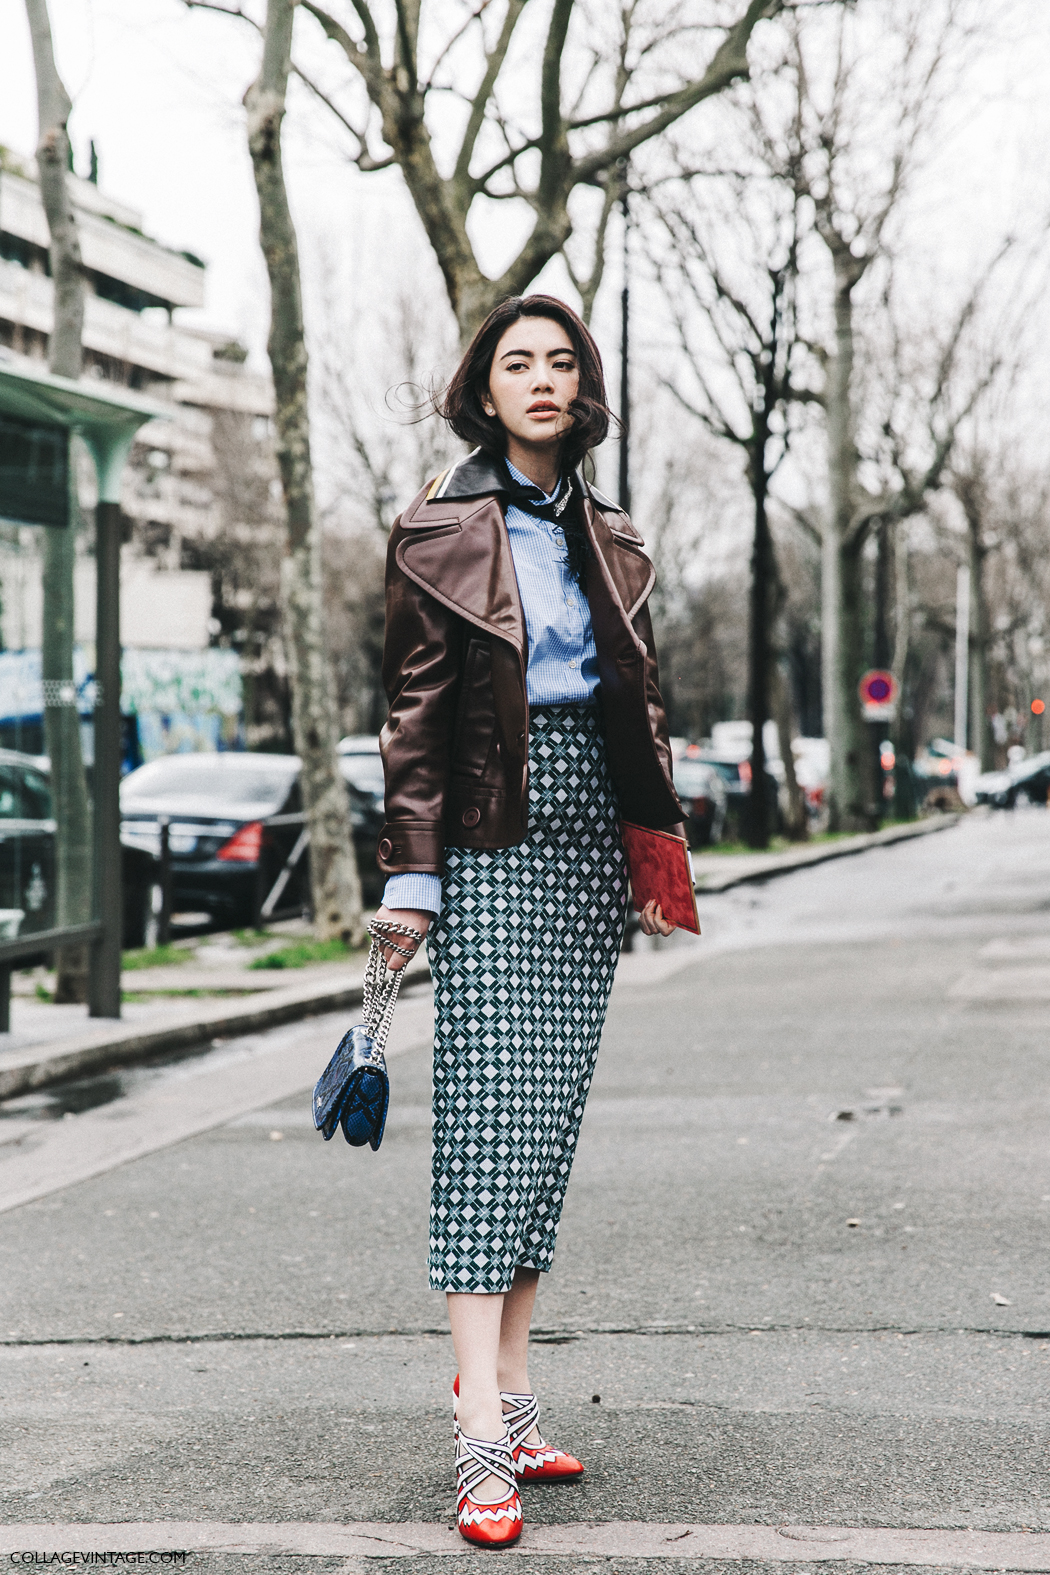 Fall Street Fashion 2013 For Girls: Street Style PFW VIII